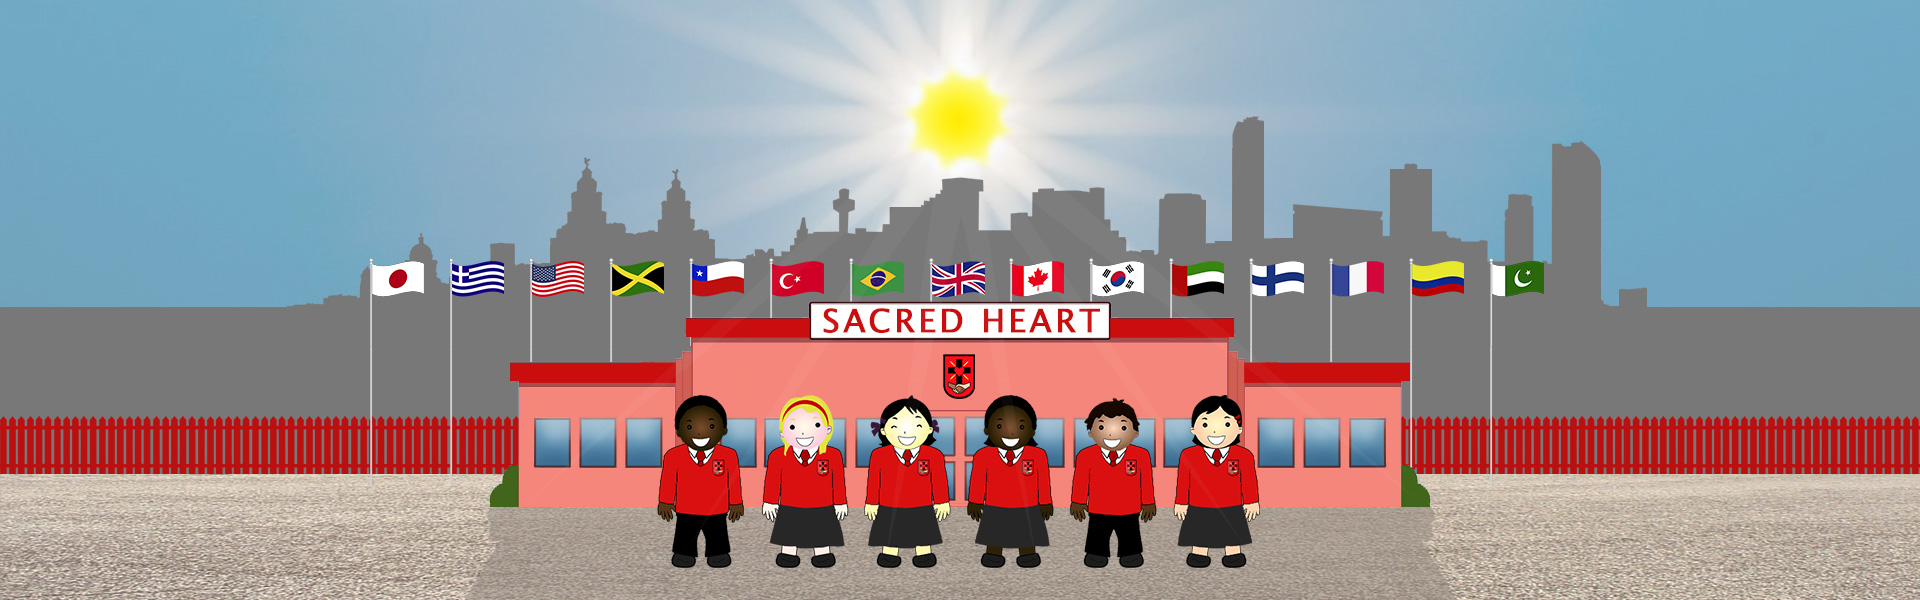 sacred-heart-liverpool-world-in-one-school-7-summer